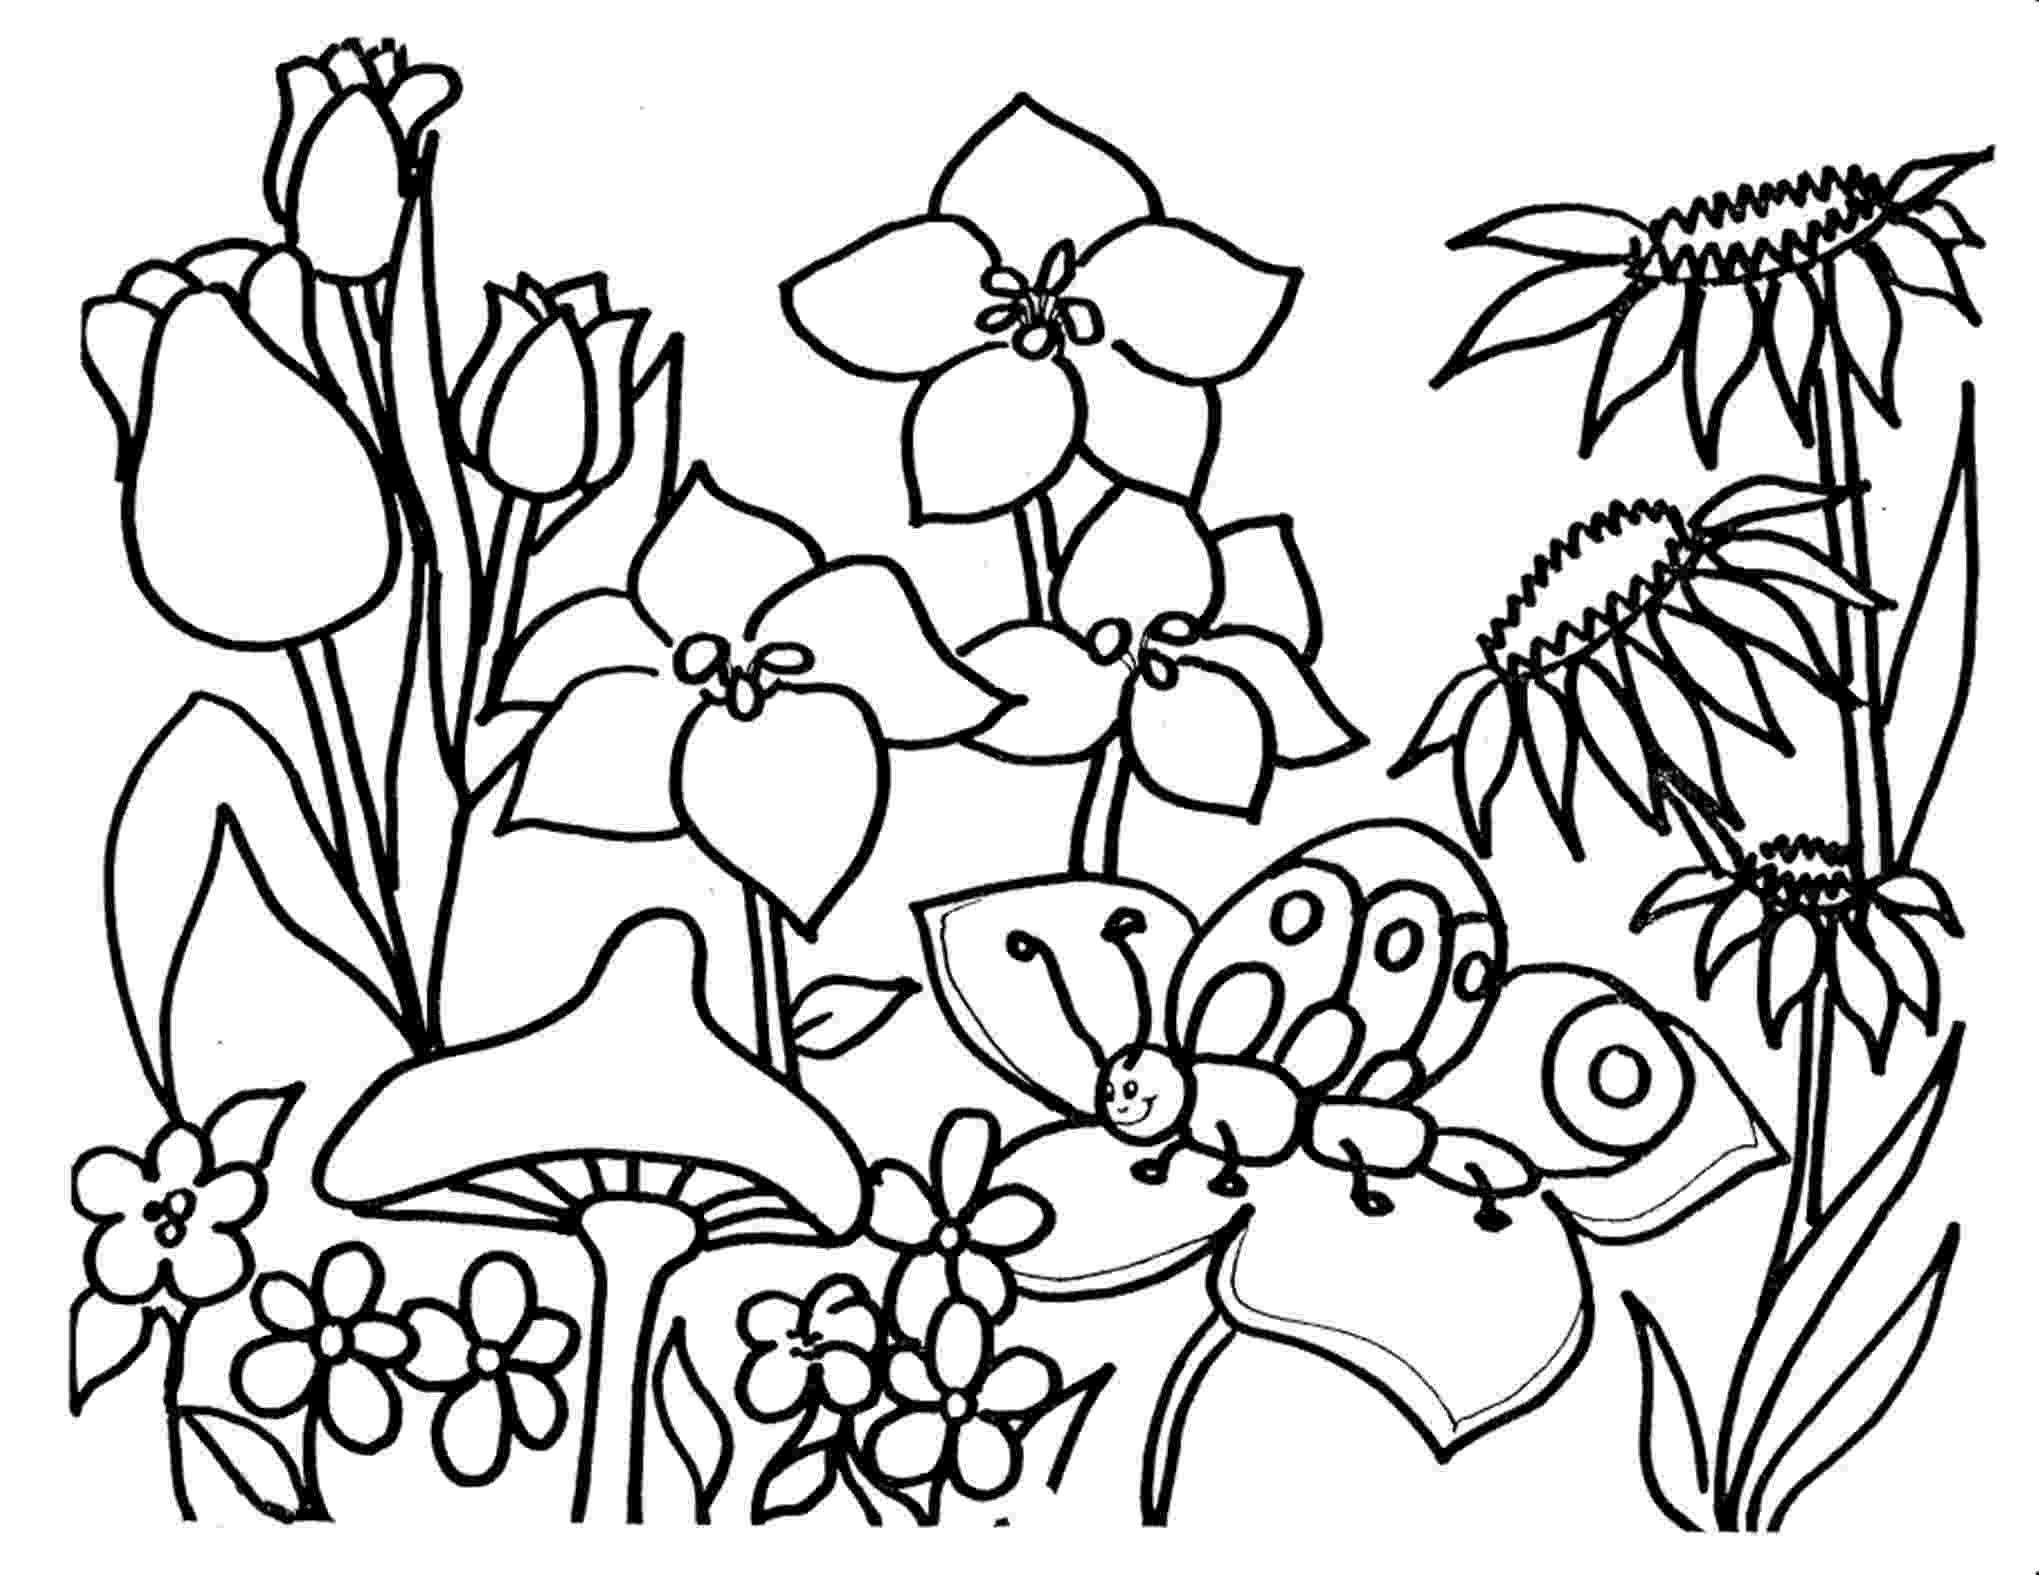 pictures of flowers to color free printables free printable flower coloring pages for kids best to color of pictures flowers printables free